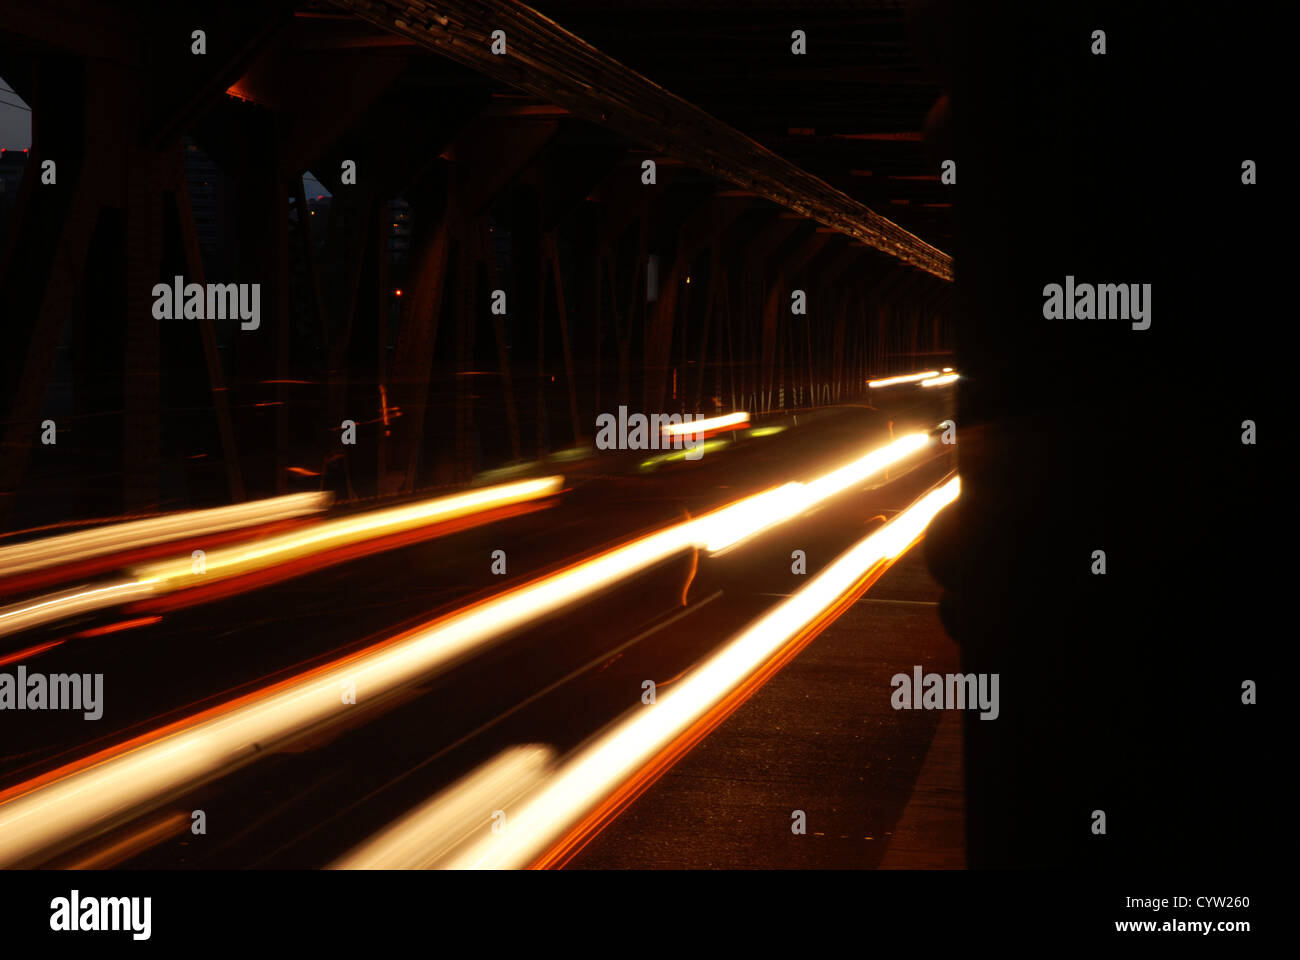 Long exposure of traffic over a bridge at night. - Stock Image